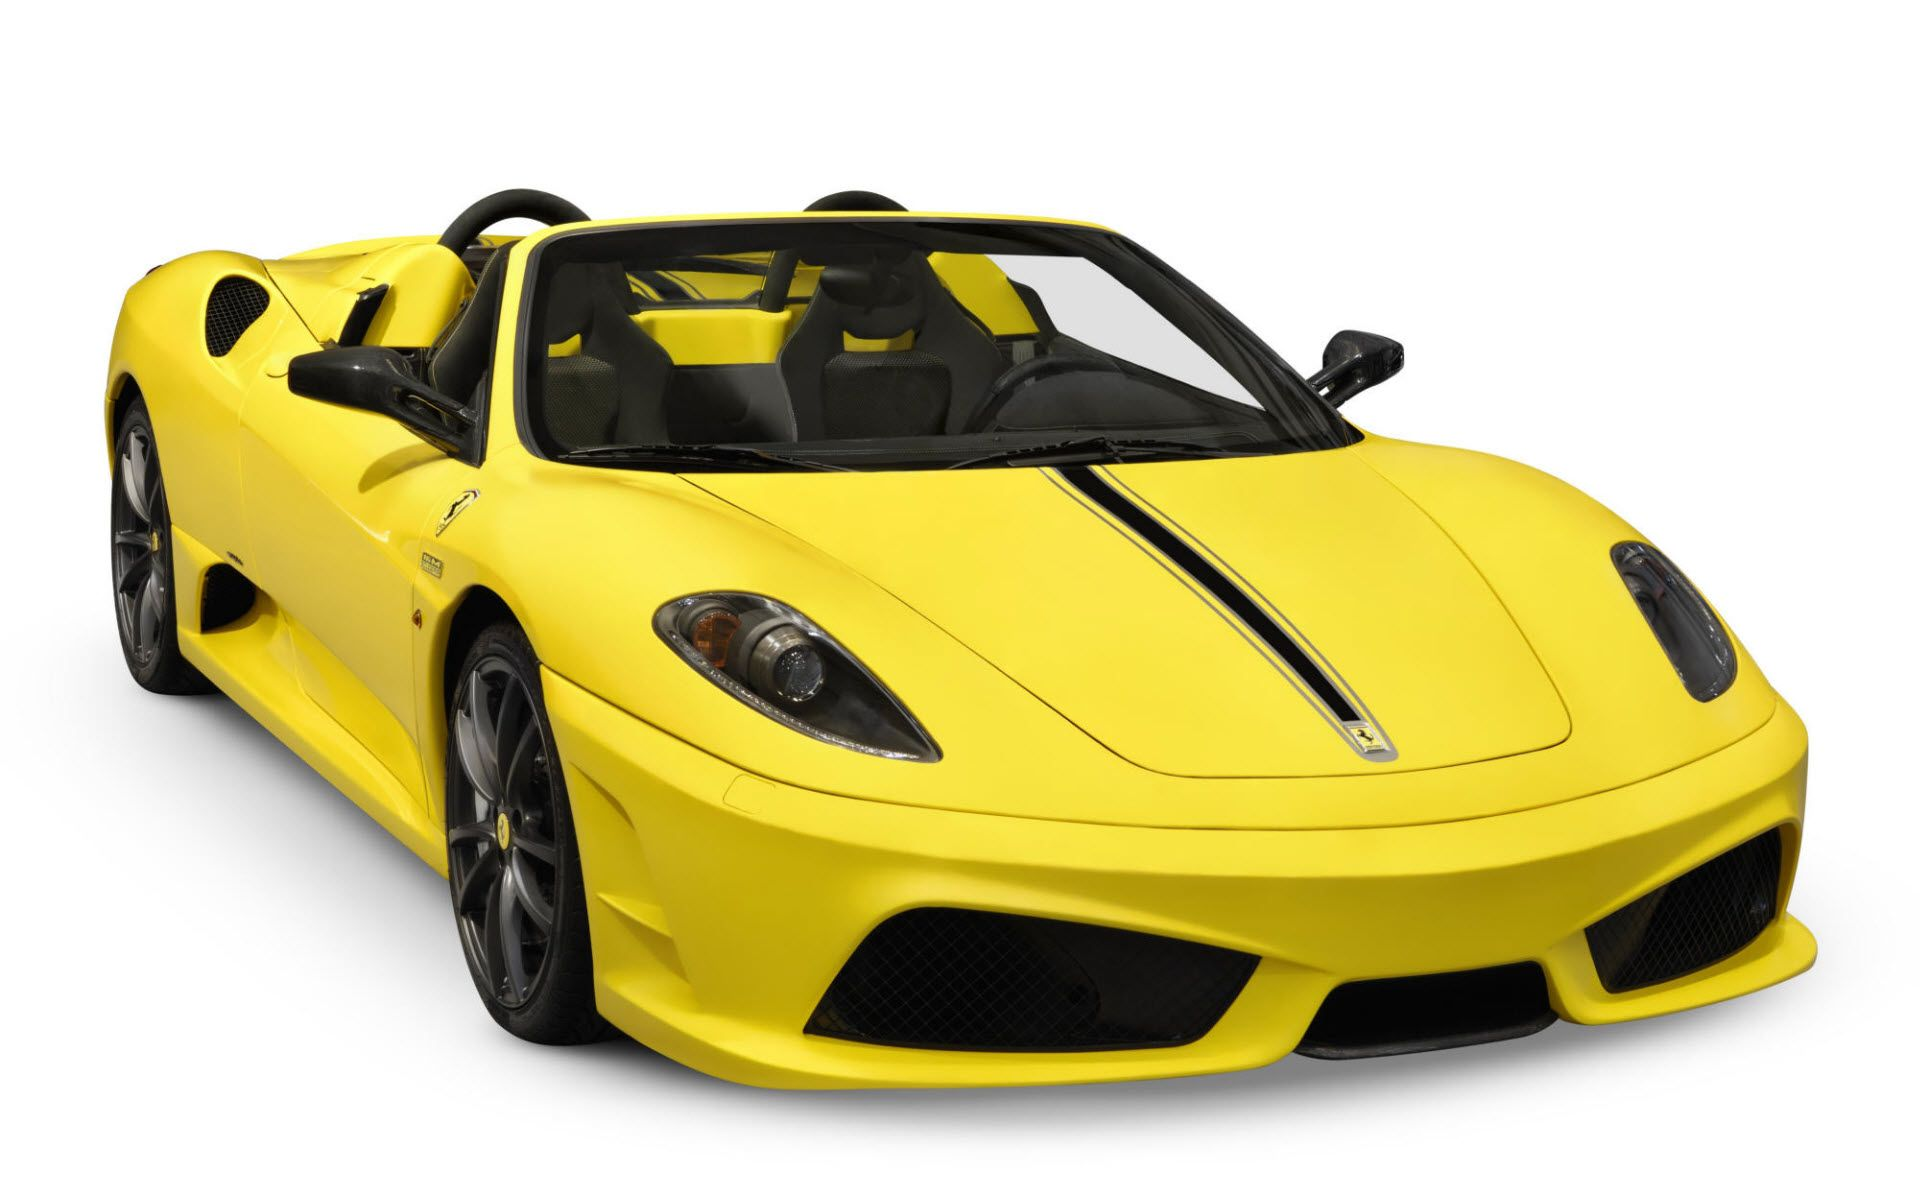 Amazing Yellow Ferrari Sport Cars Cabriolet Front Right Angle View - Cool yellow cars